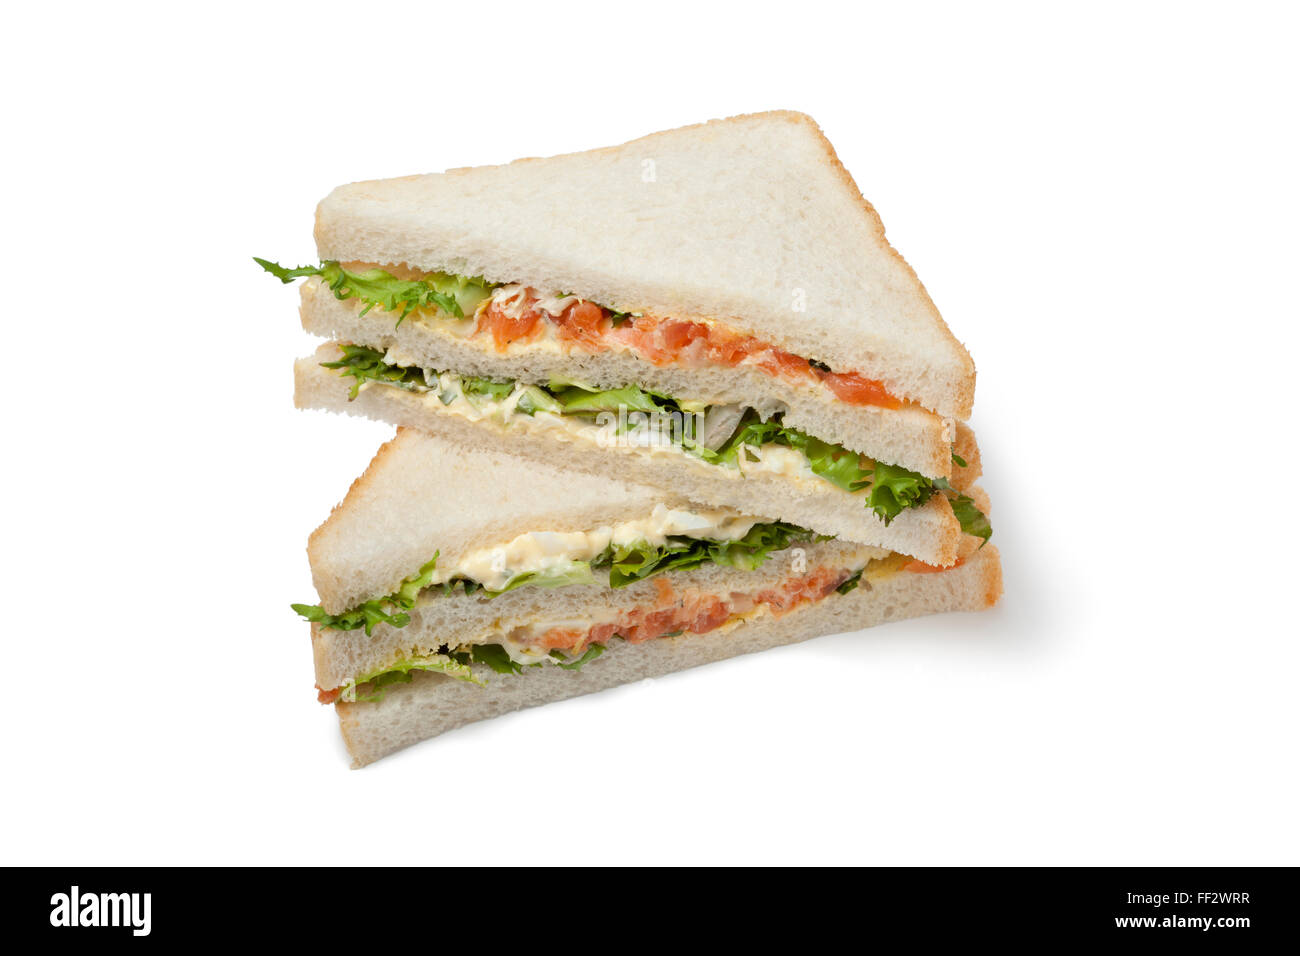 Egg Sandwich Cut Out High Resolution Stock Photography And Images Alamy